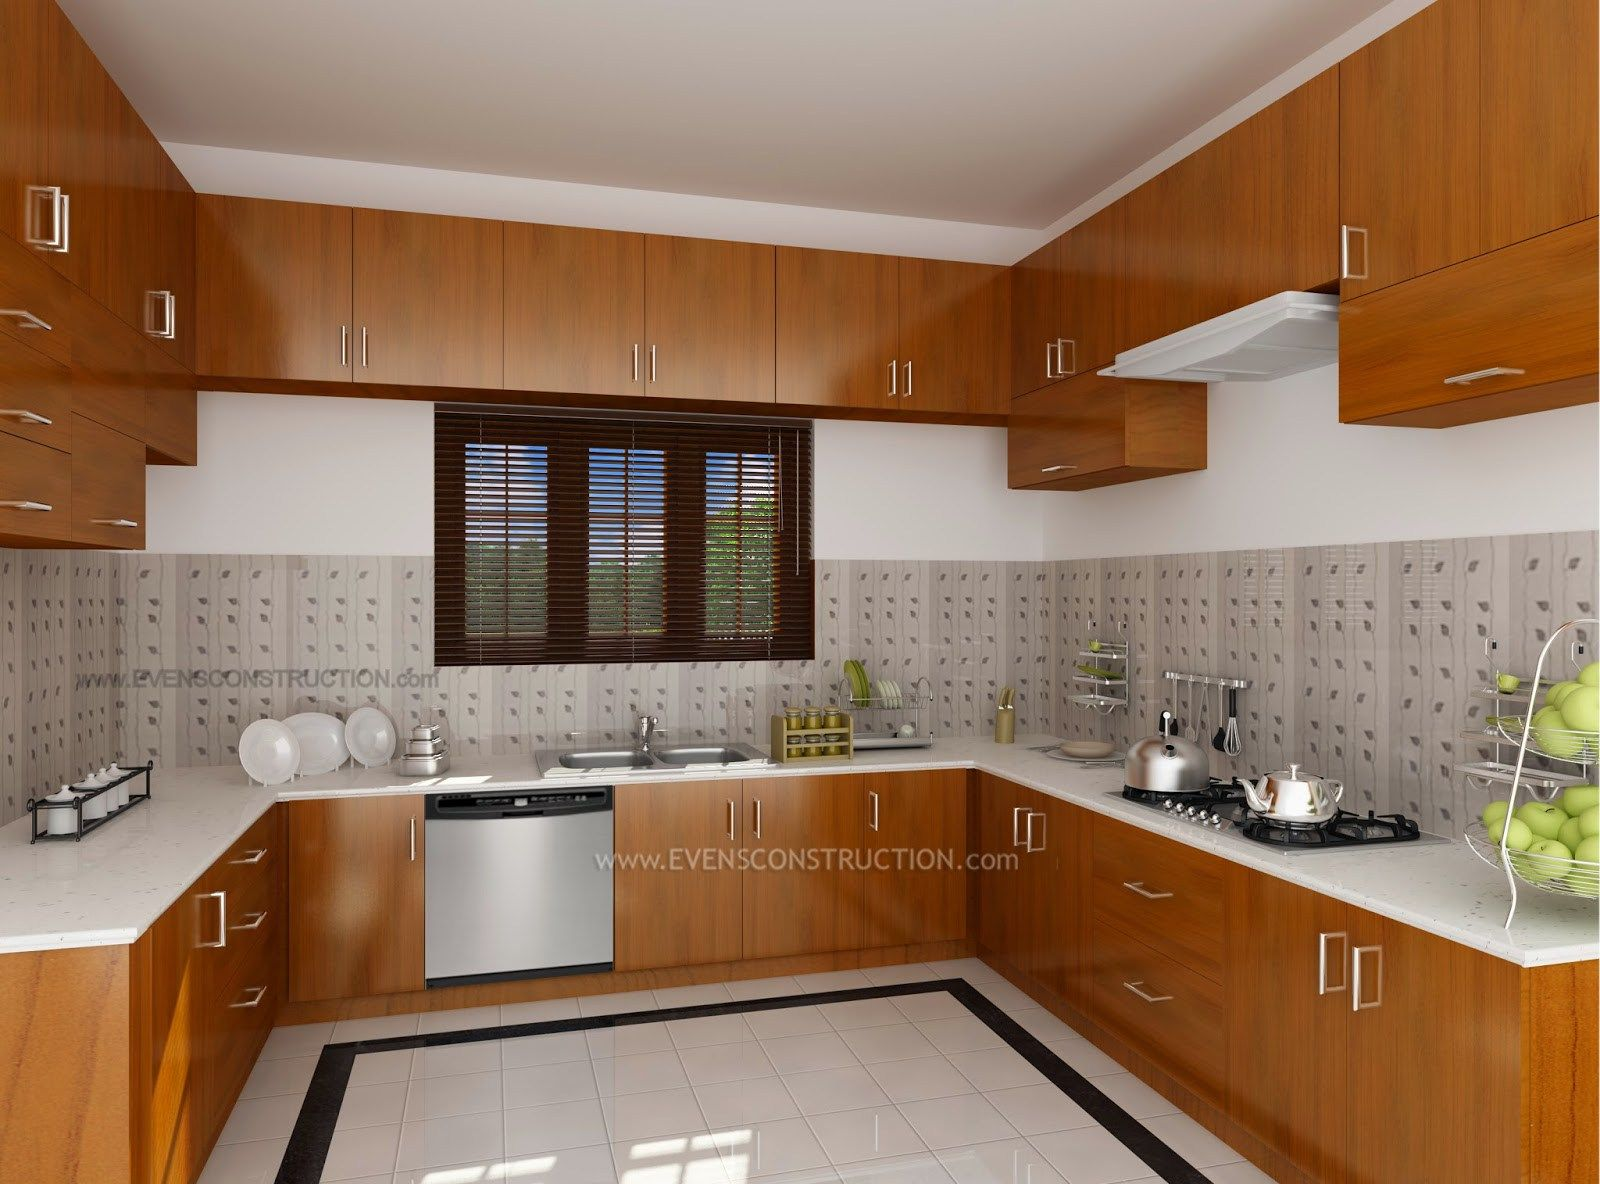 Merveilleux Design Interior Kitchen Home Kerala Modern House Kitchen Kitchen Dining Kitchen  Interior Designs Subin Surendran Architects